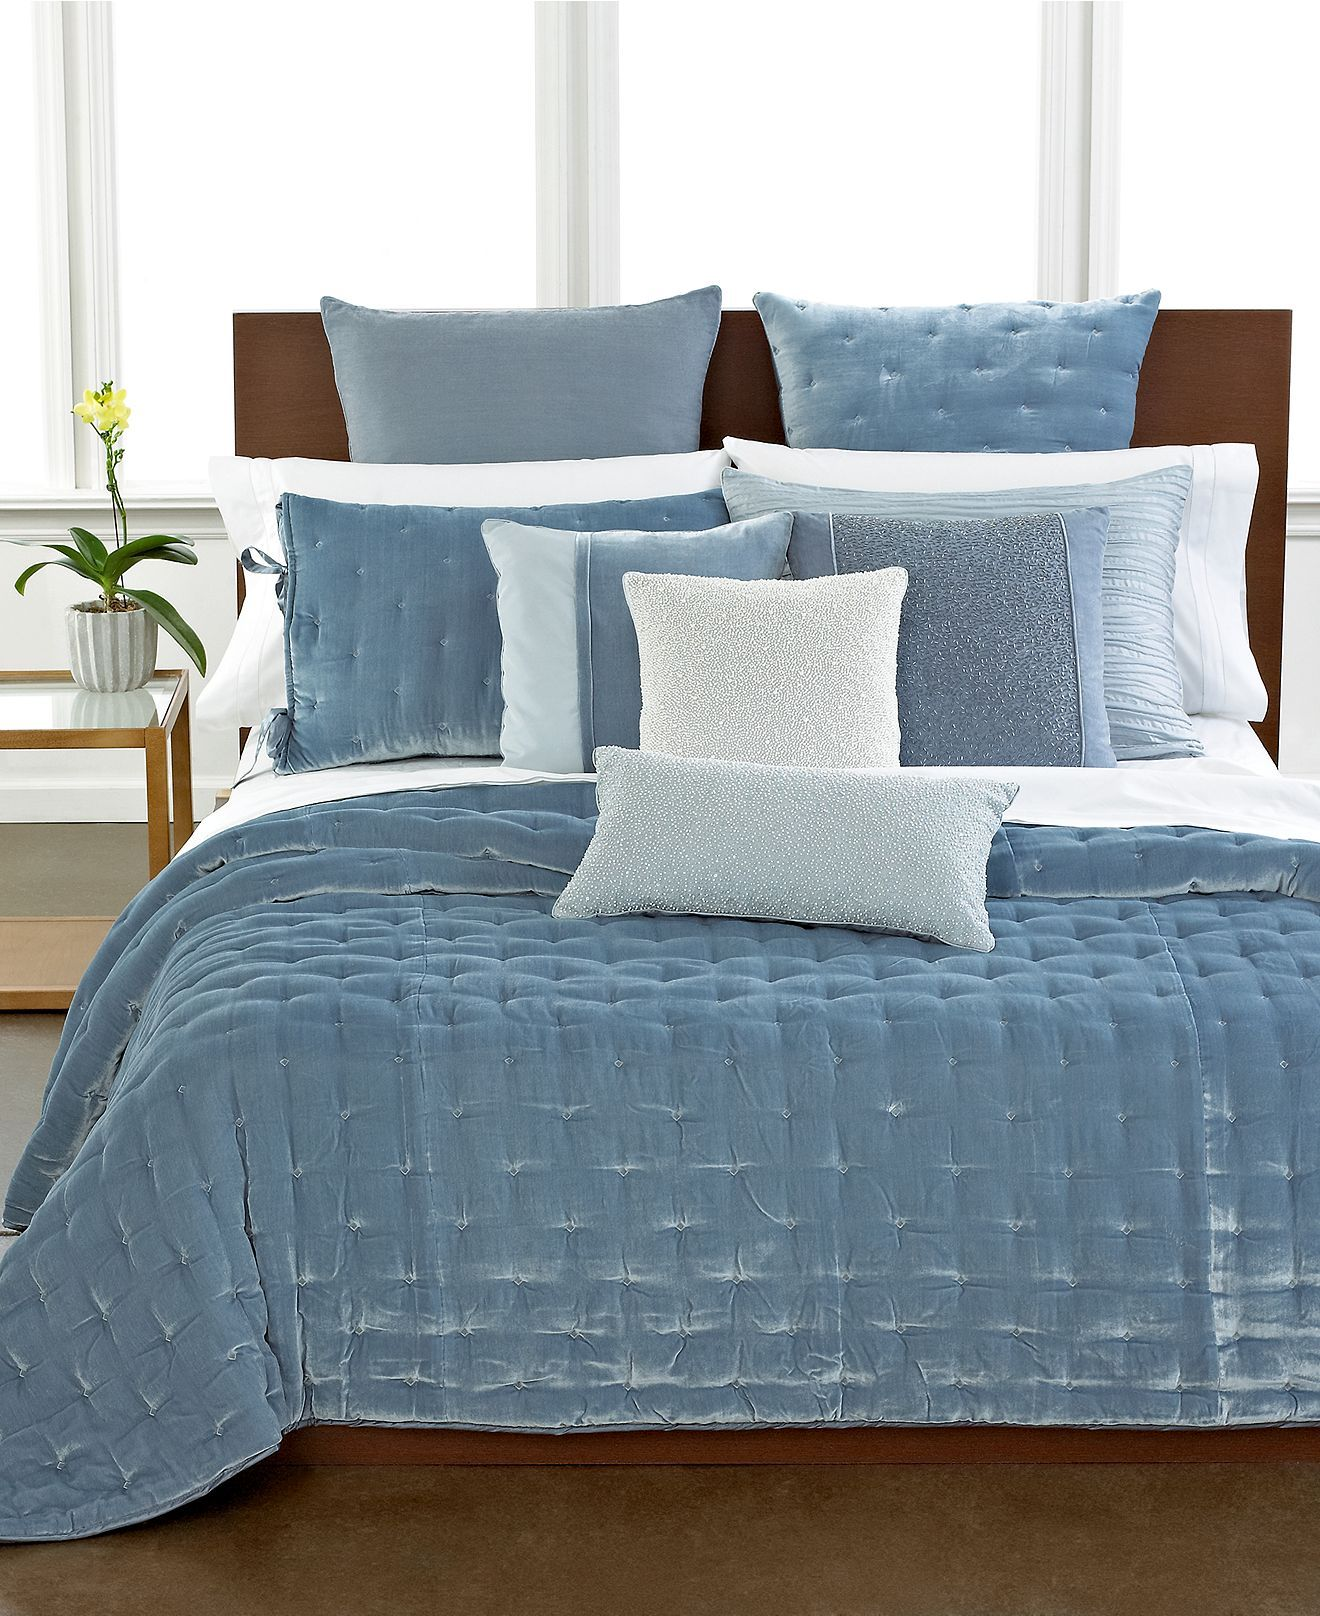 Hotel Collection Finest Waves Bedding - Collections Bed & Bath Macy'